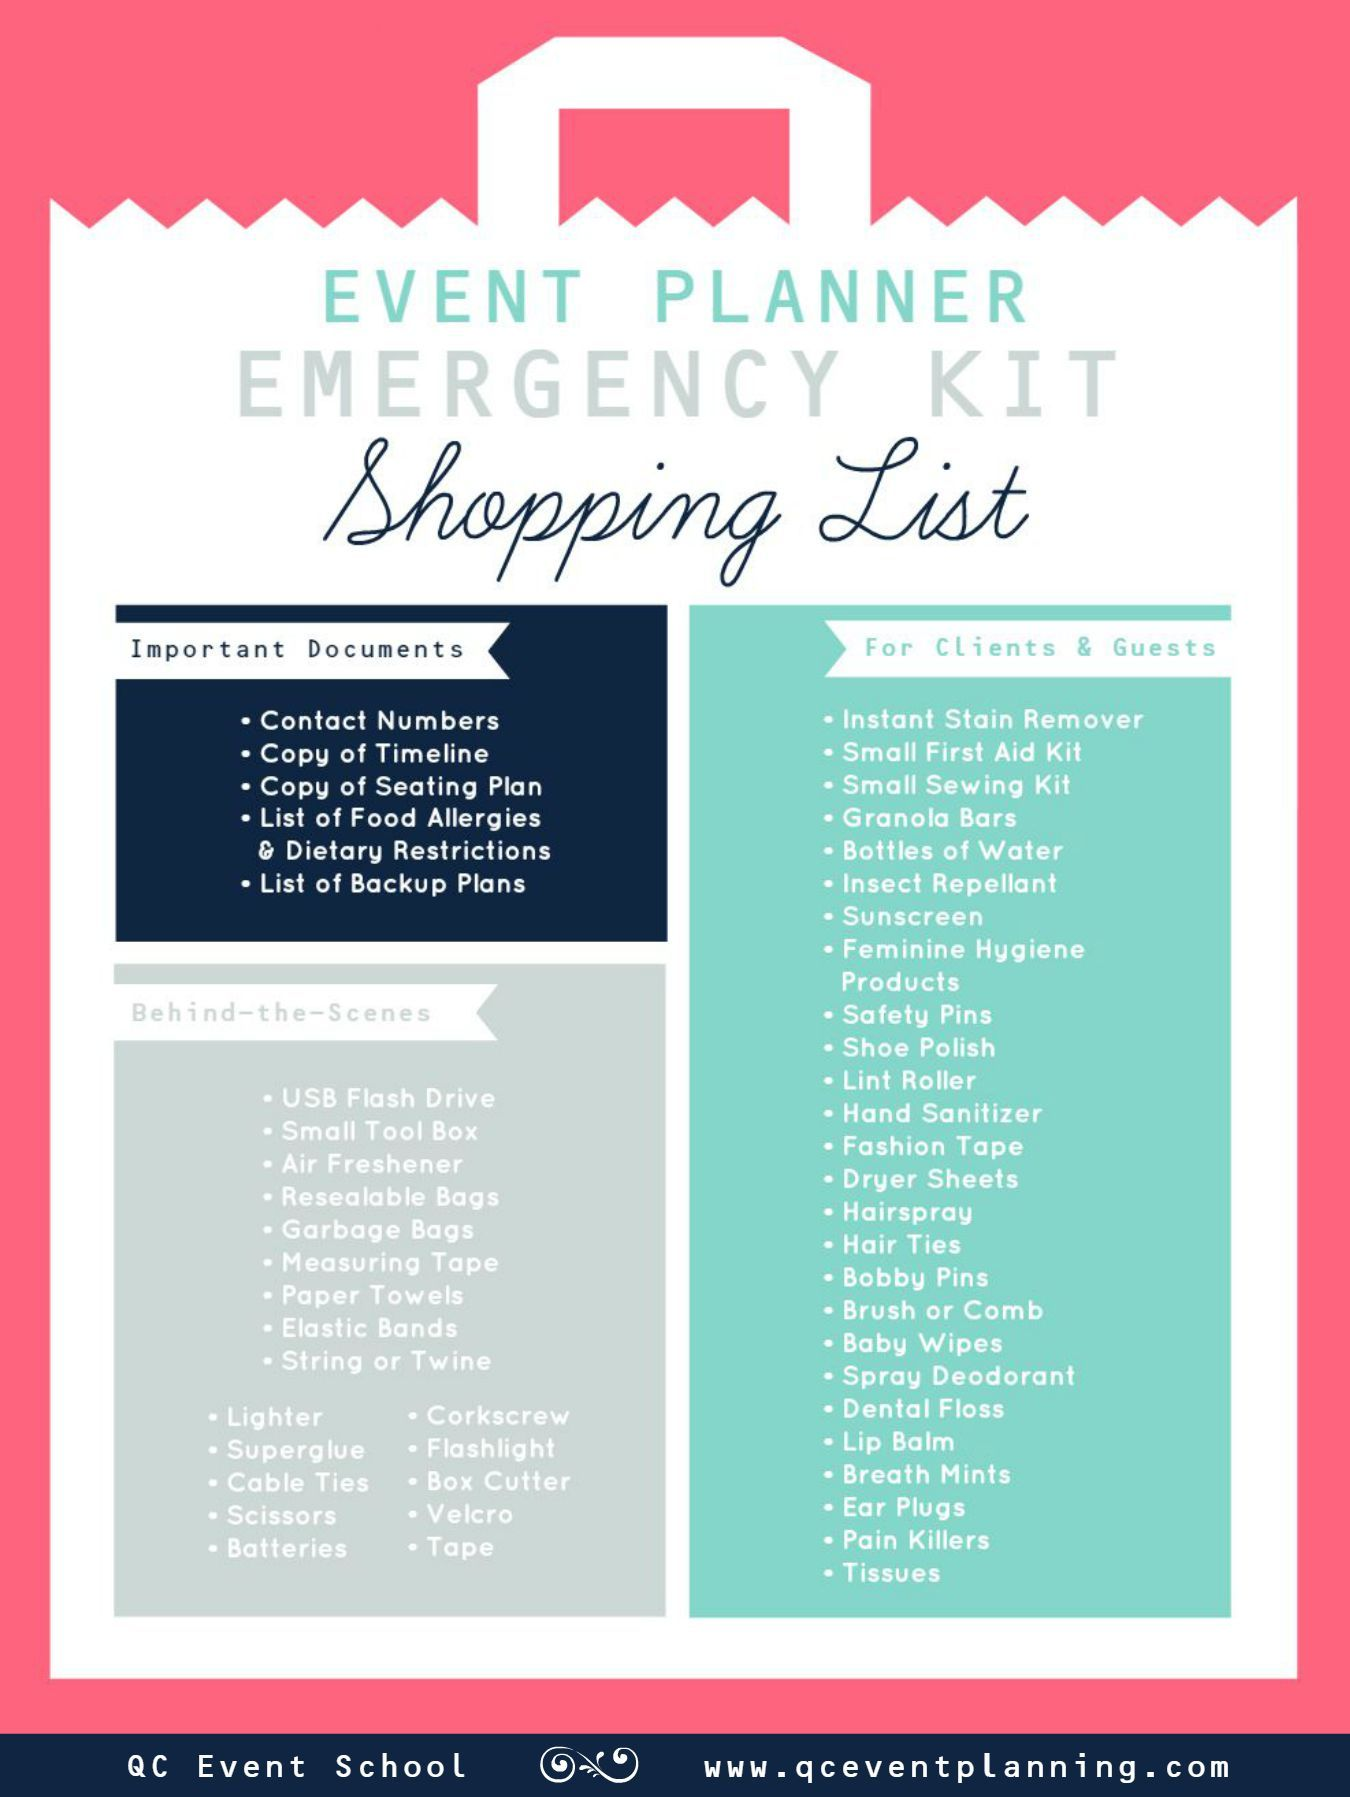 Event Planner Emergency Kit Infographic scheduled via httpwww